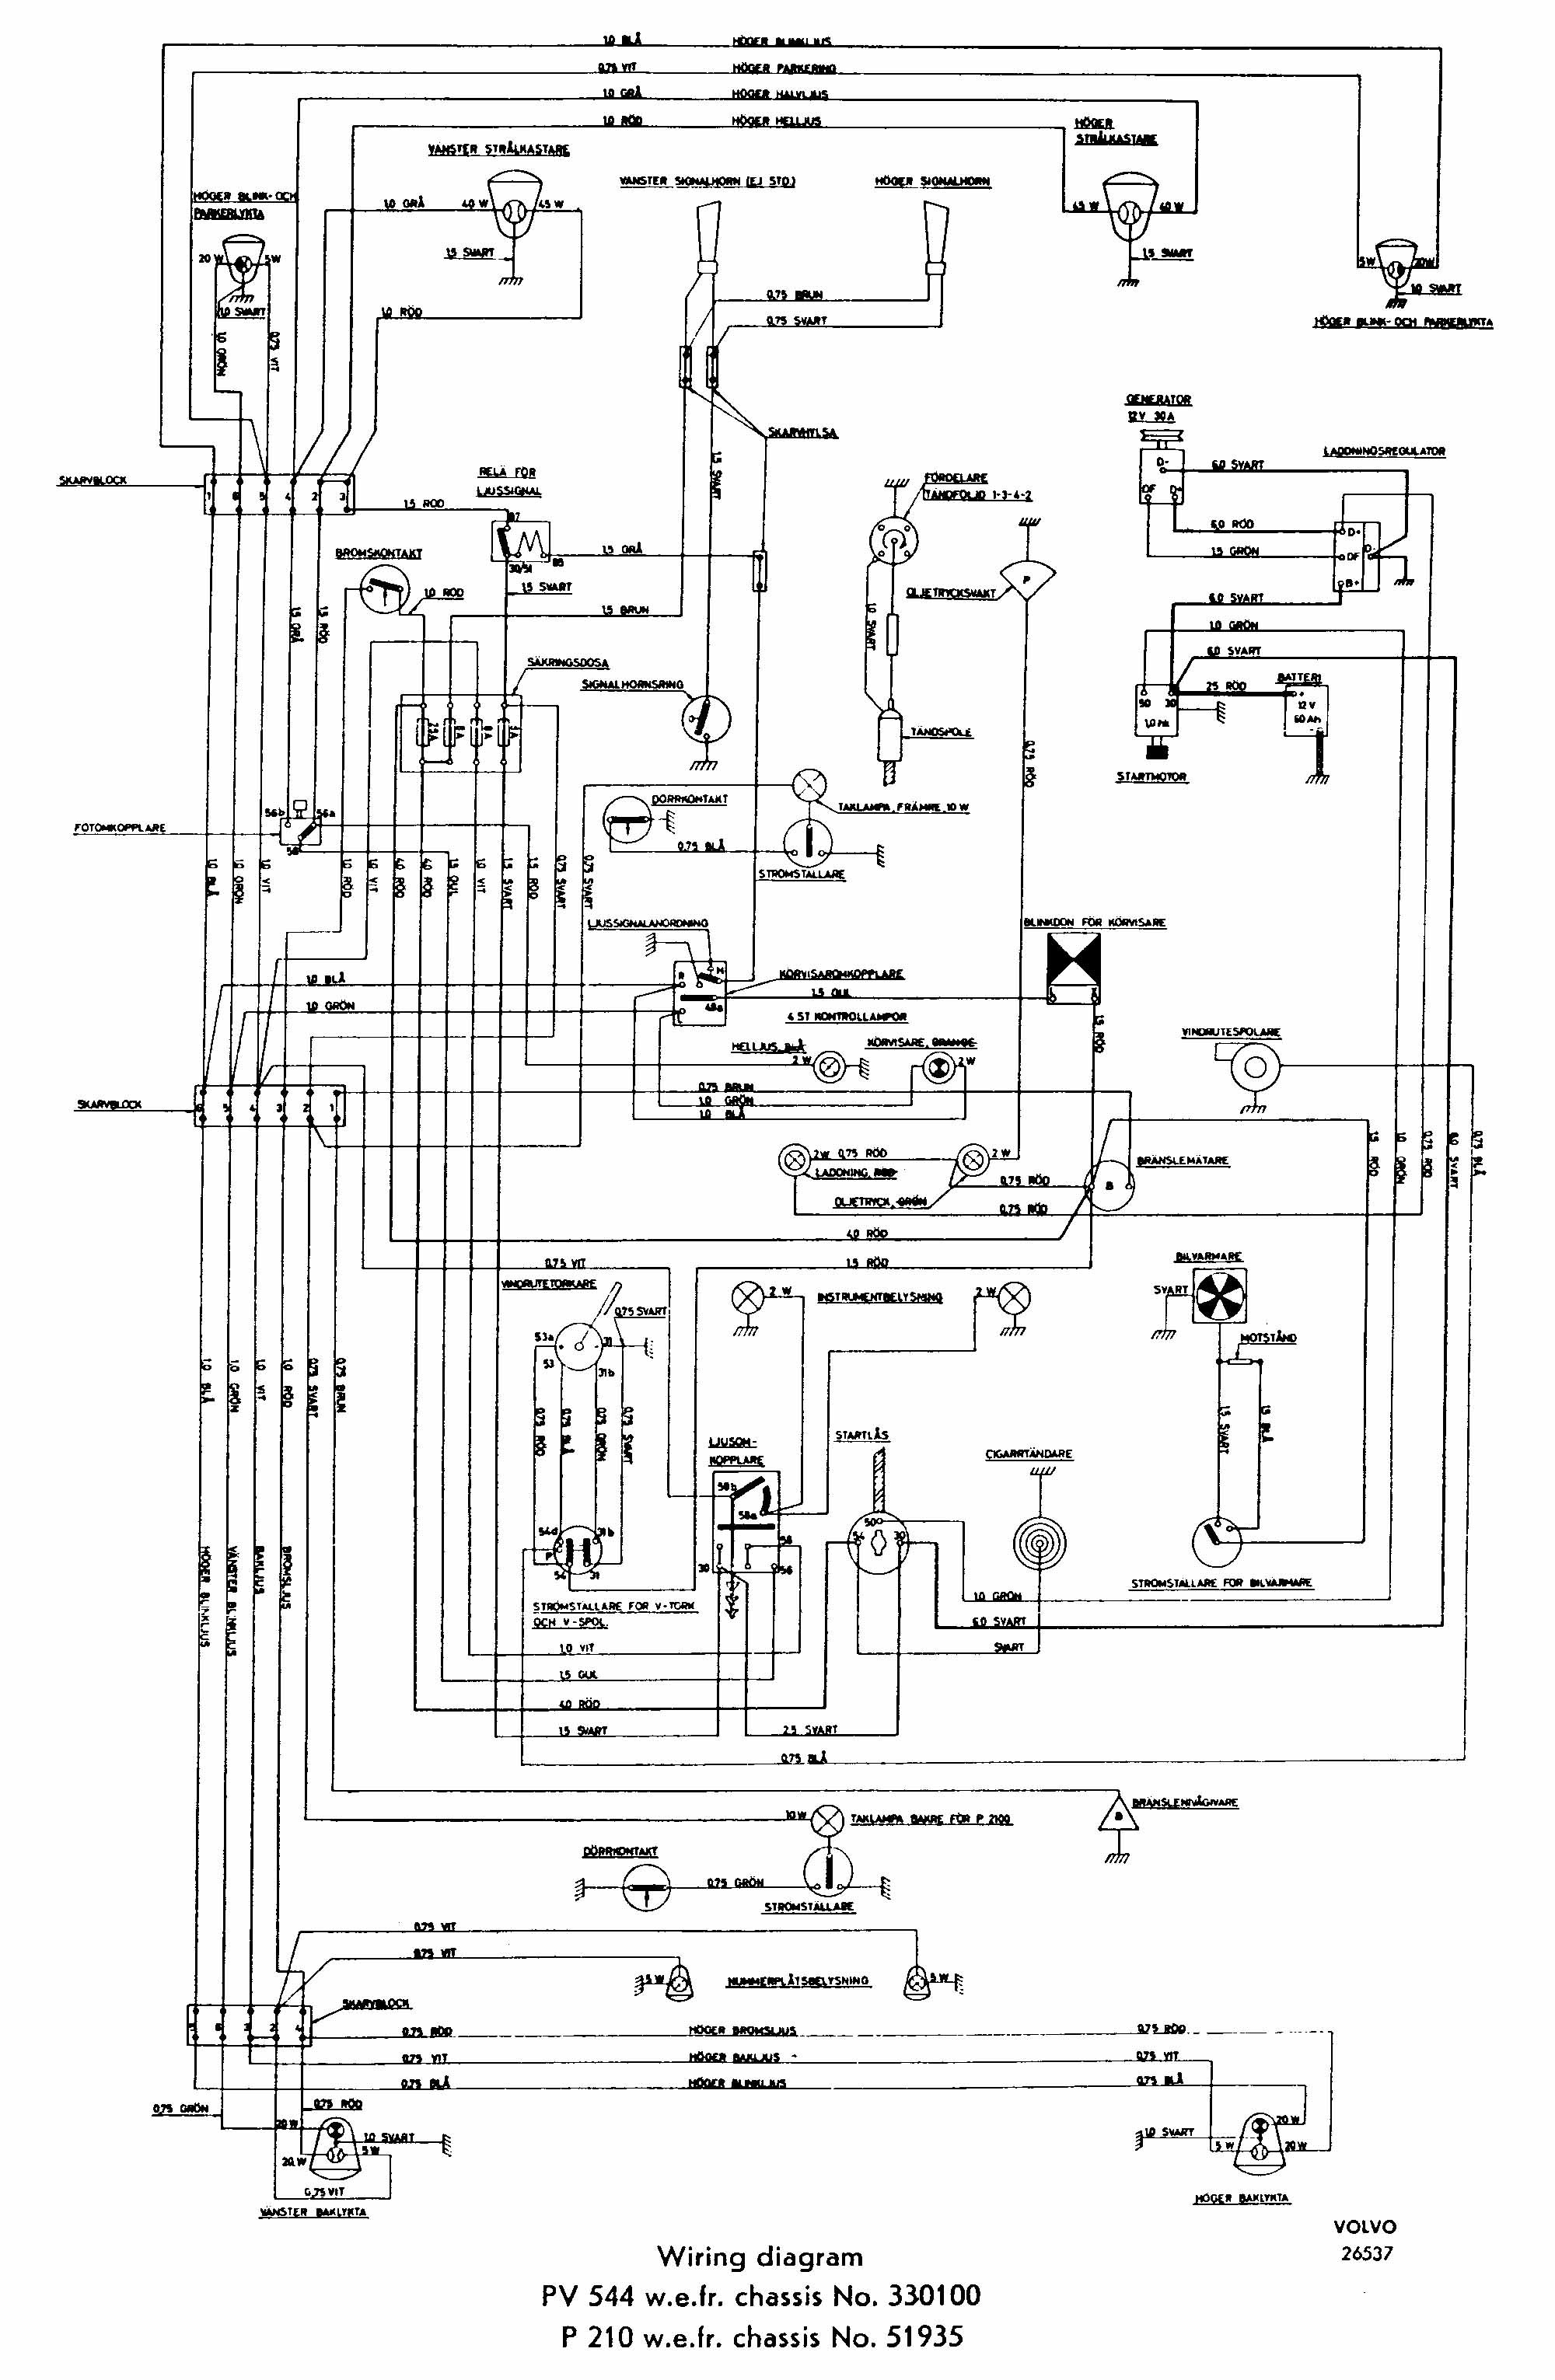 2000 Volvo S80 Engine Diagram Start Building A Wiring Vw Transporter Manual 122 Rh Detoxicrecenze Com T5 T6